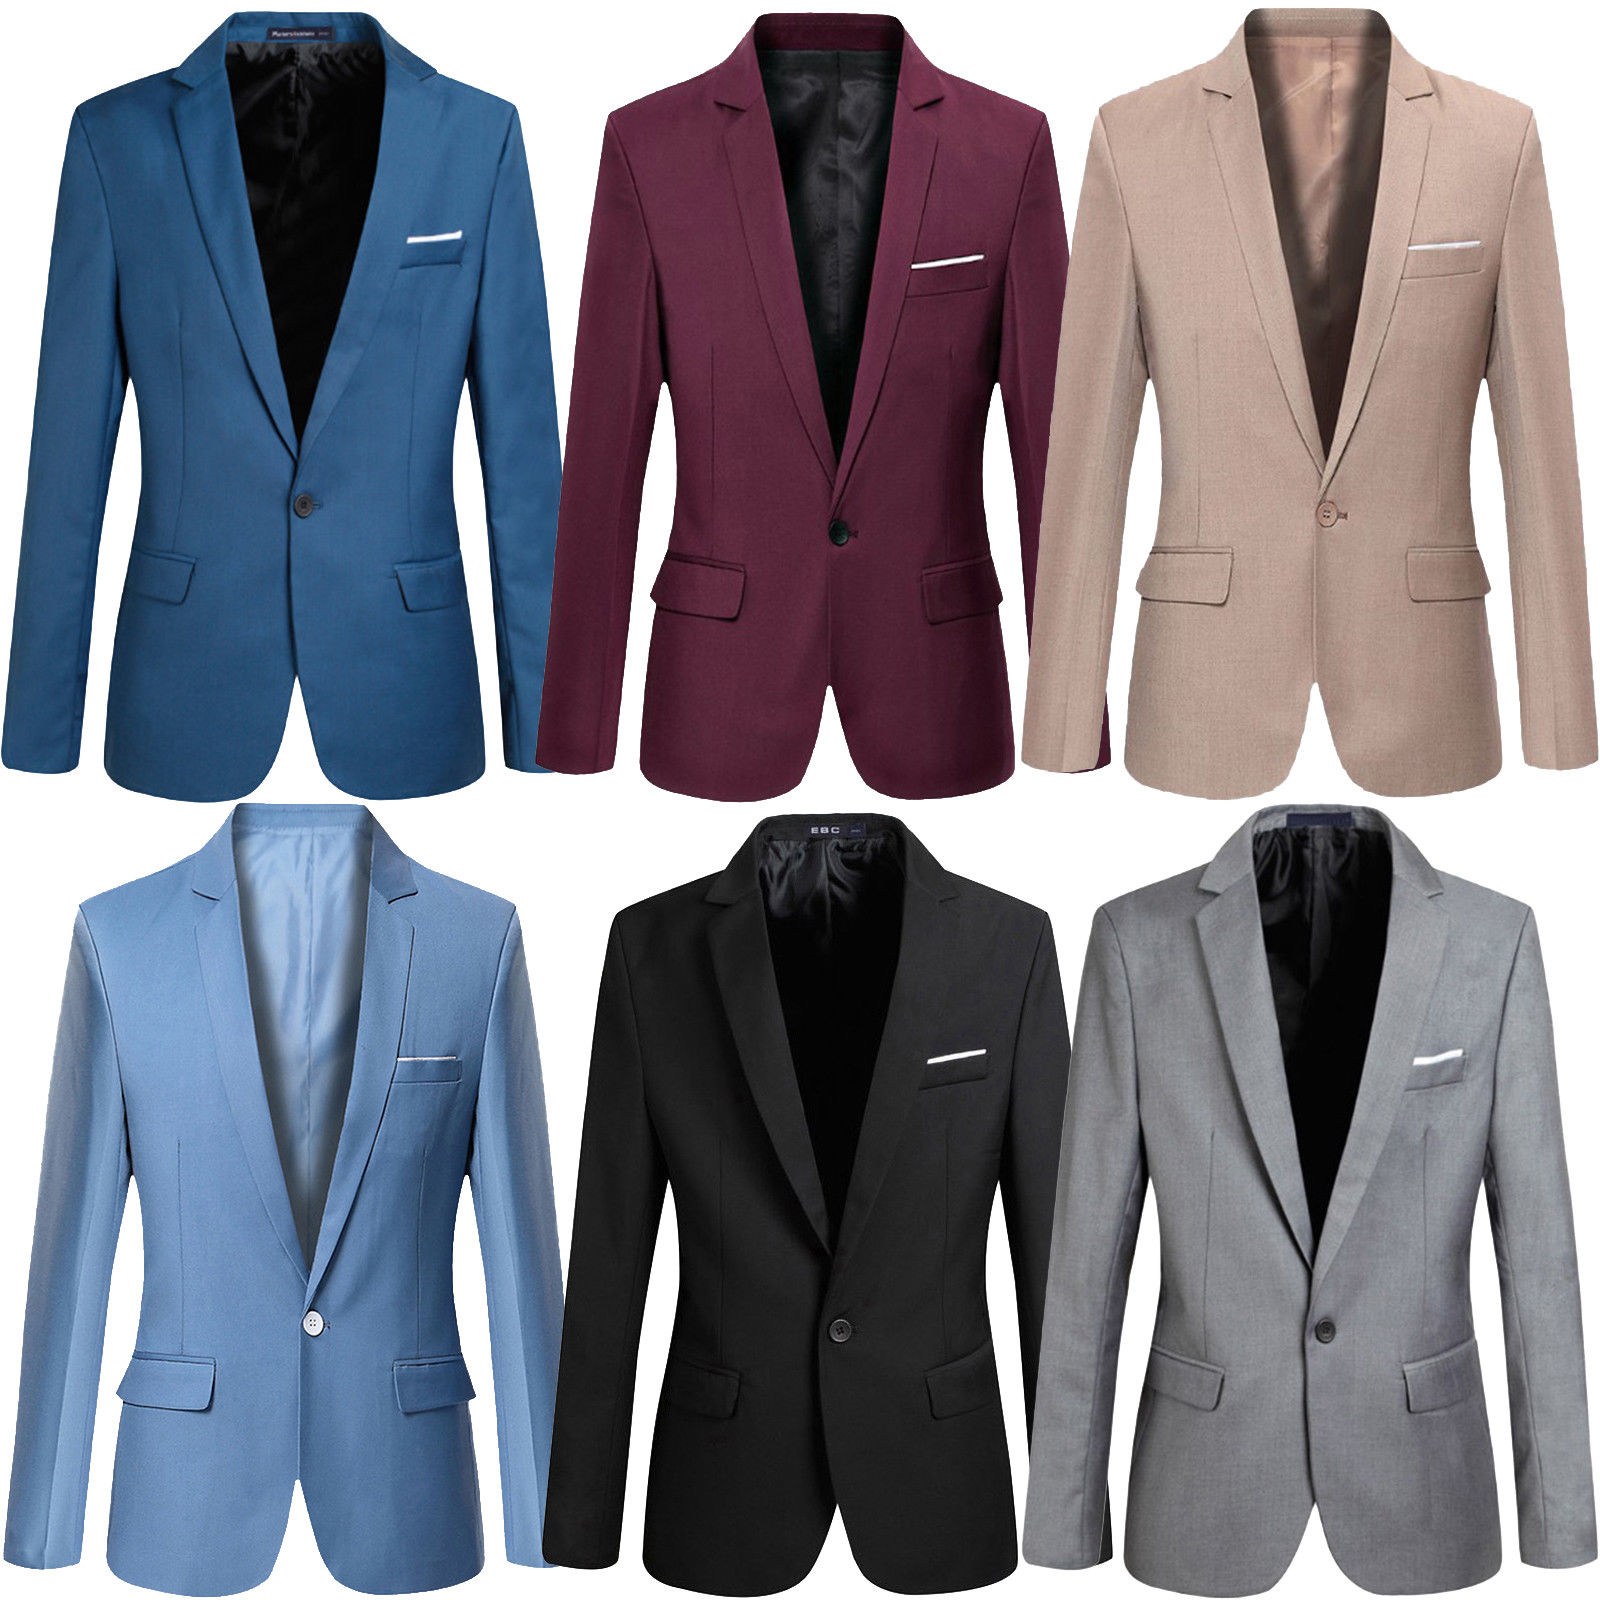 Men's Casual Slim Fit One Button Suit Business Coat Jacket Outwear G40